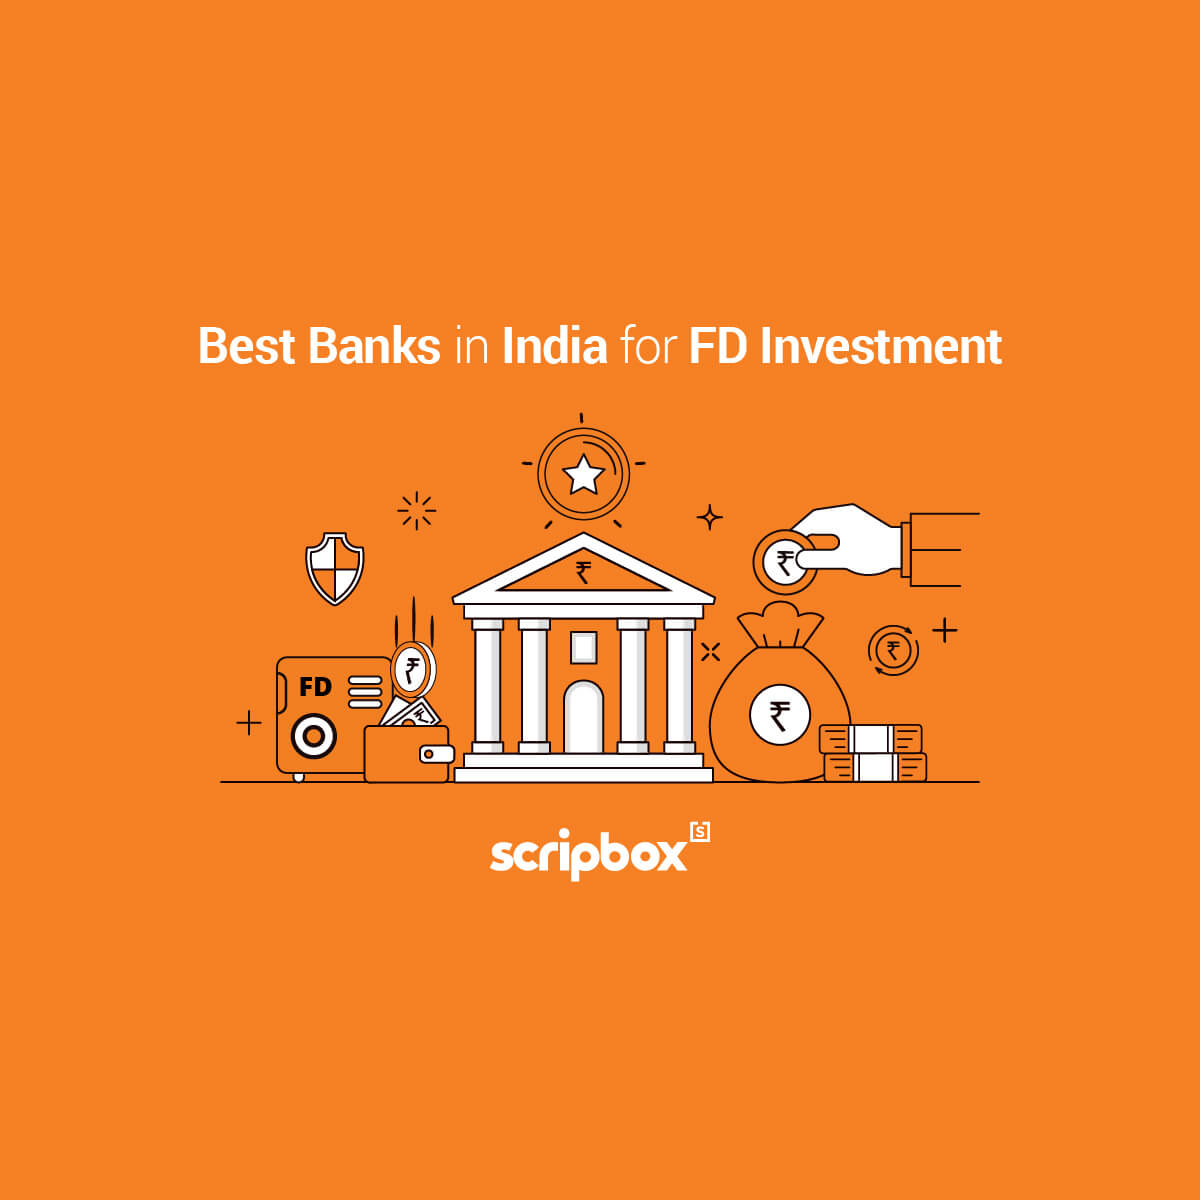 best banks in india